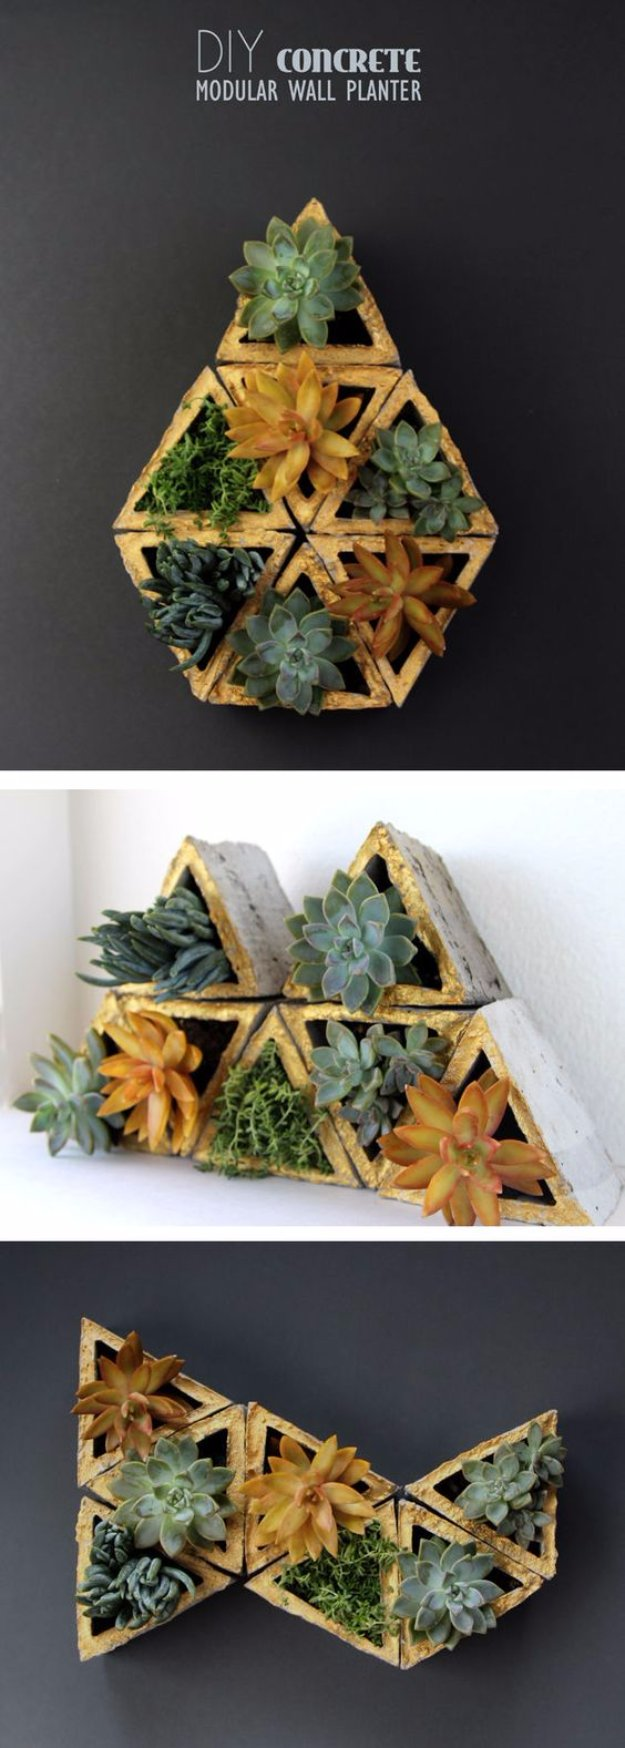 43 DIY concrete crafts - Concrete Modular Geometric Wall Planters - Cheap and creative countertops and ideas for floors, patio and porch decor, tables, planters, vases, frames, jewelry holder, home decor and DIY gifts #gifts #diy